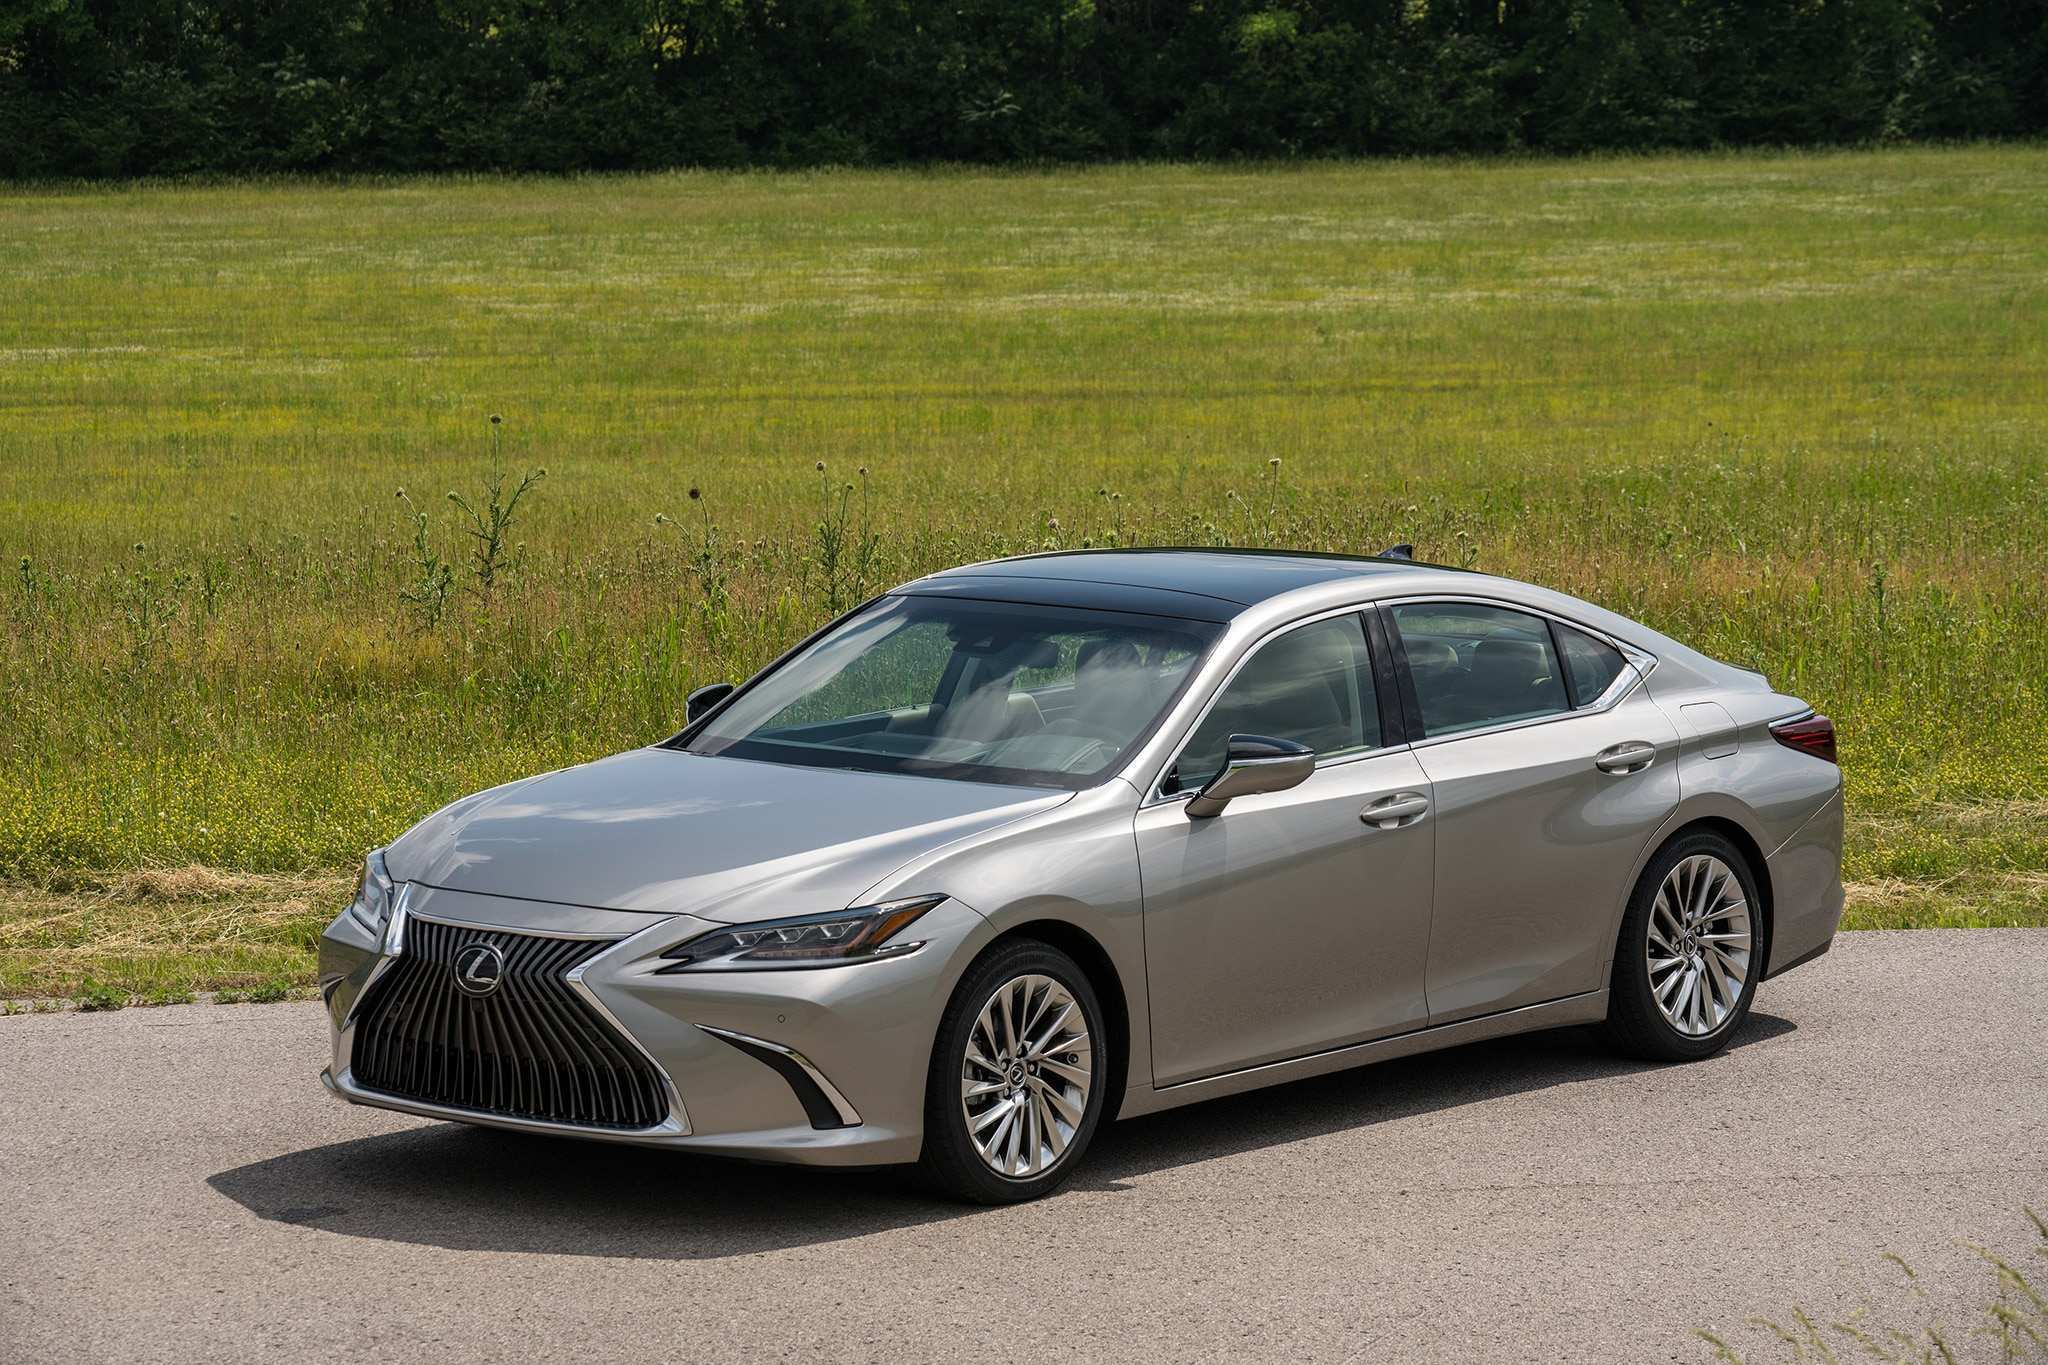 52 Gallery of Es 350 Lexus 2019 Pricing with Es 350 Lexus 2019